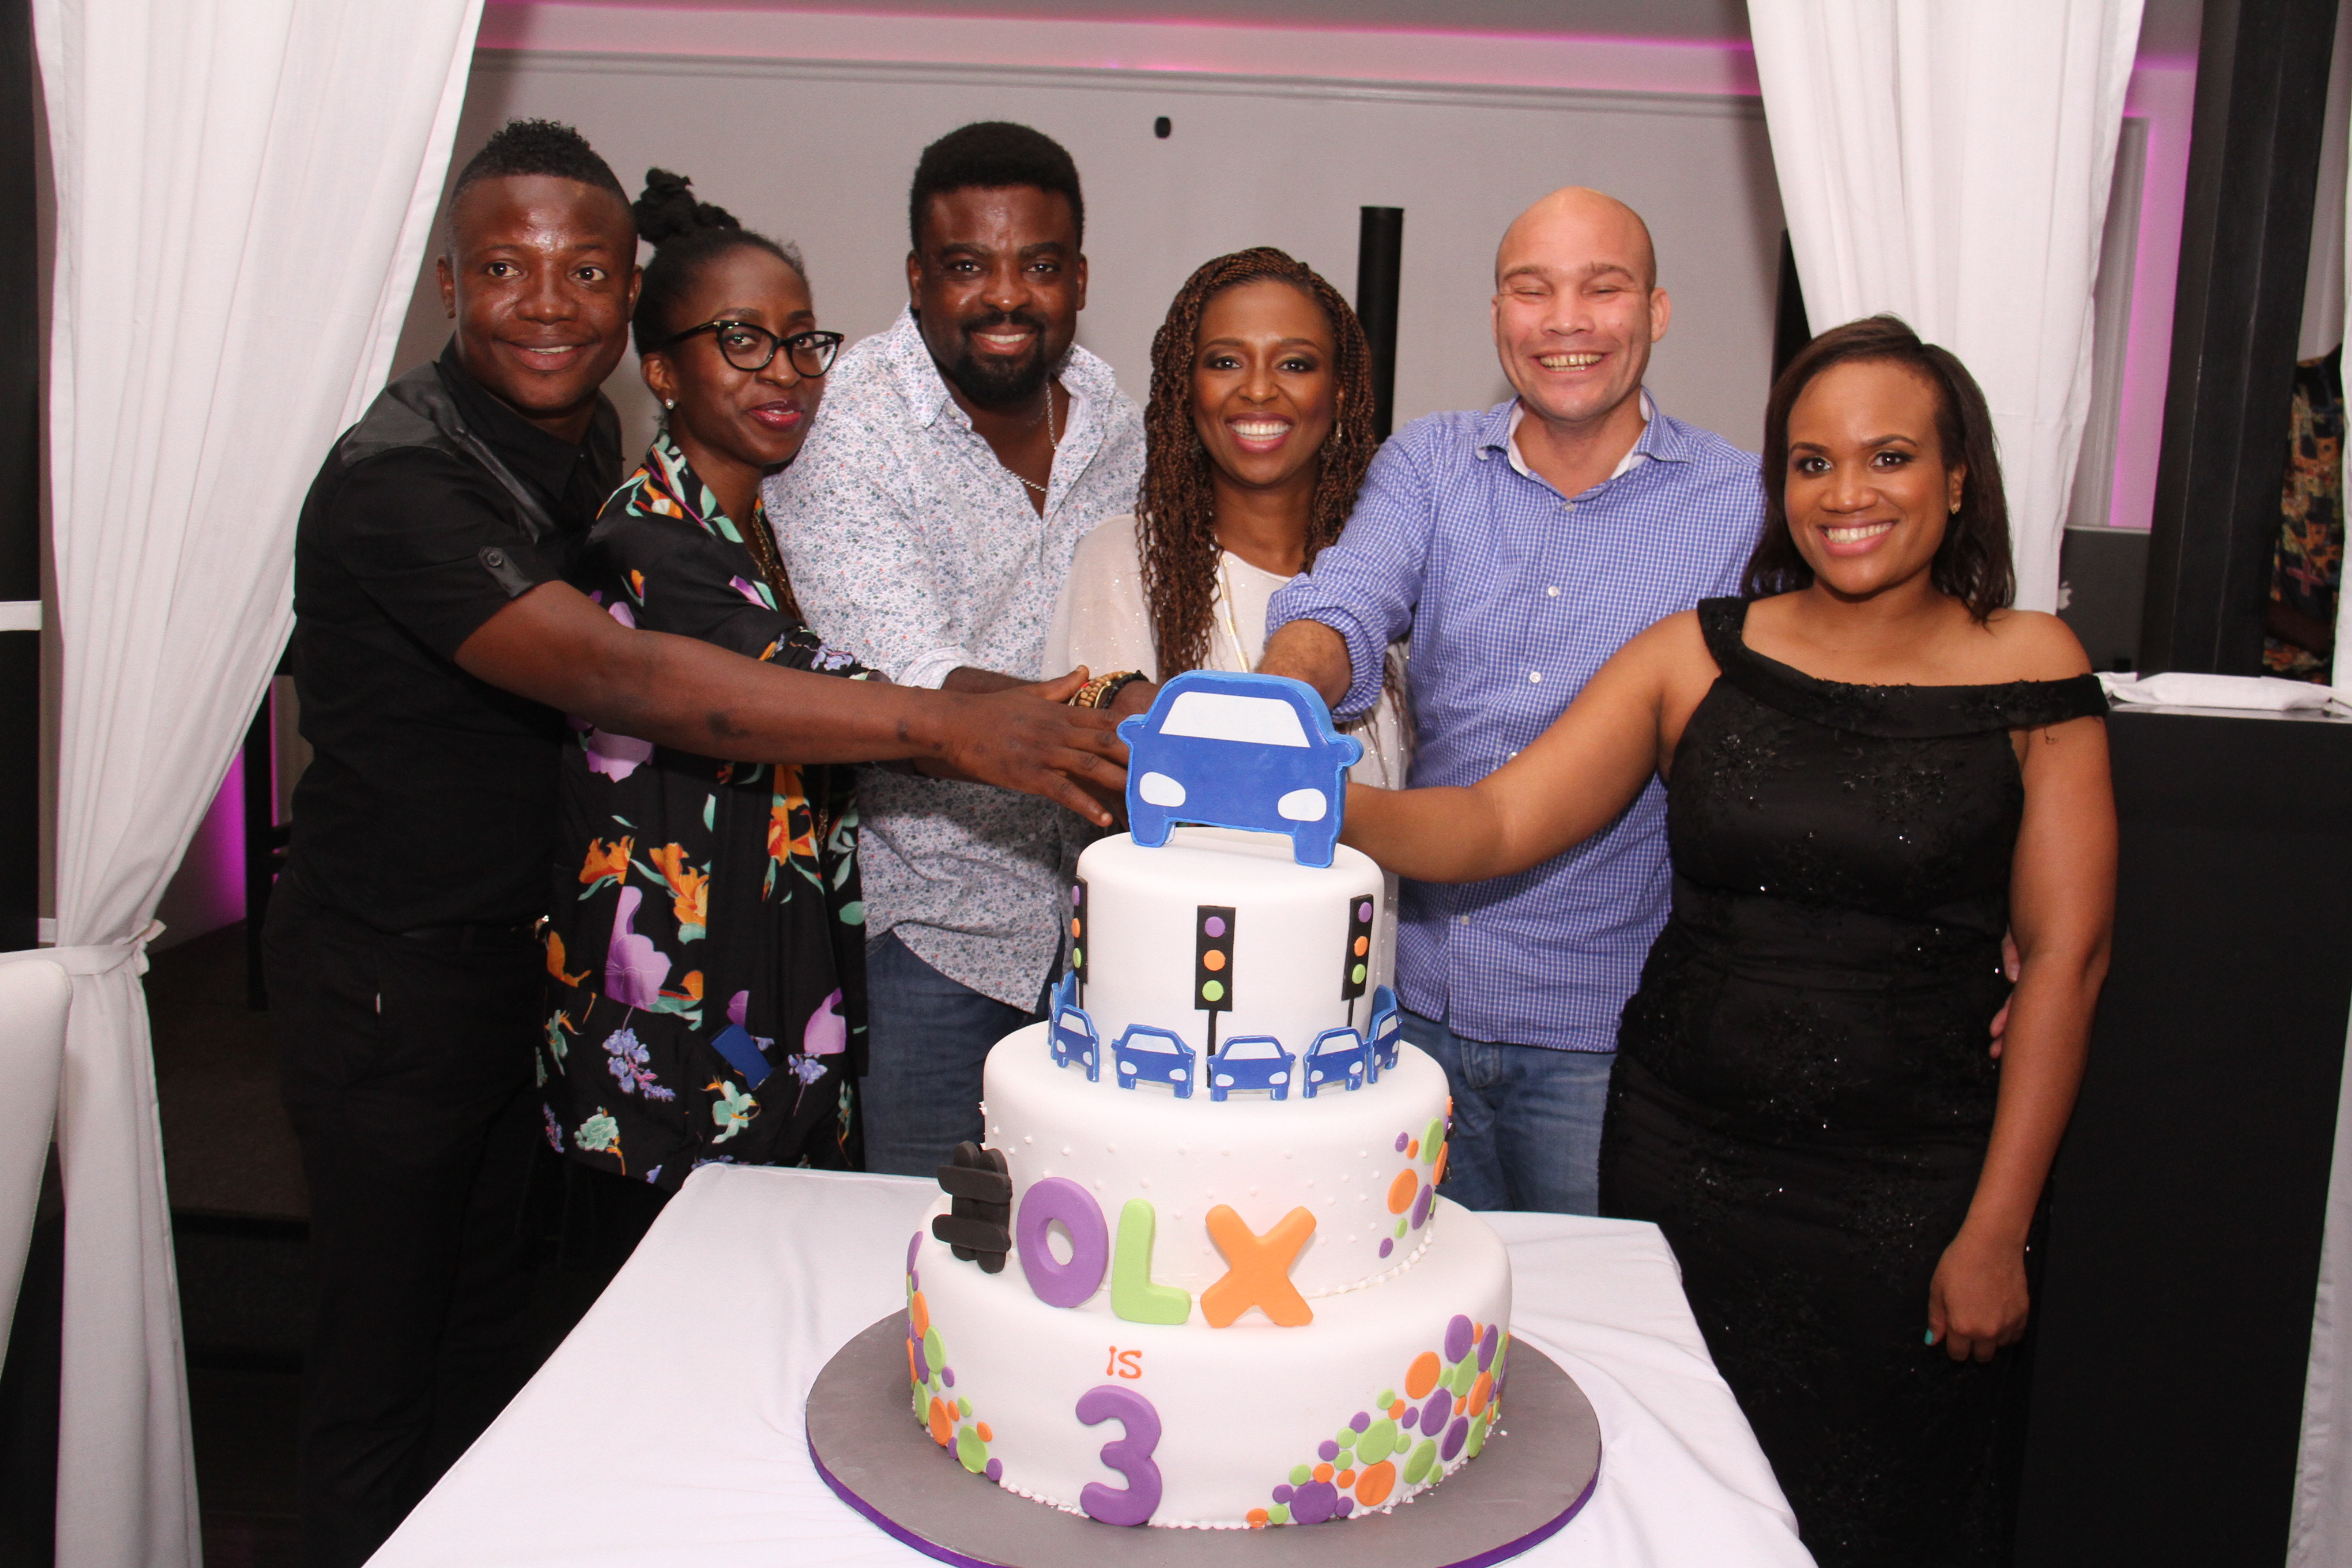 L-R Bash, Comedian & MC; Fife Aiyesimoju; Brand Marketing Manager, OLX; Kunle Afolayan; Nollywood Actor and Film Director; Lola Masha, Country Manager; OLX; Arthur Dieffenthaler; Commercial Director, Air France and Uche Nwagboso; PR & Communication Manager, OLX cutting the 3rd anniversary cake at the Rooftop Restaurant, VI.